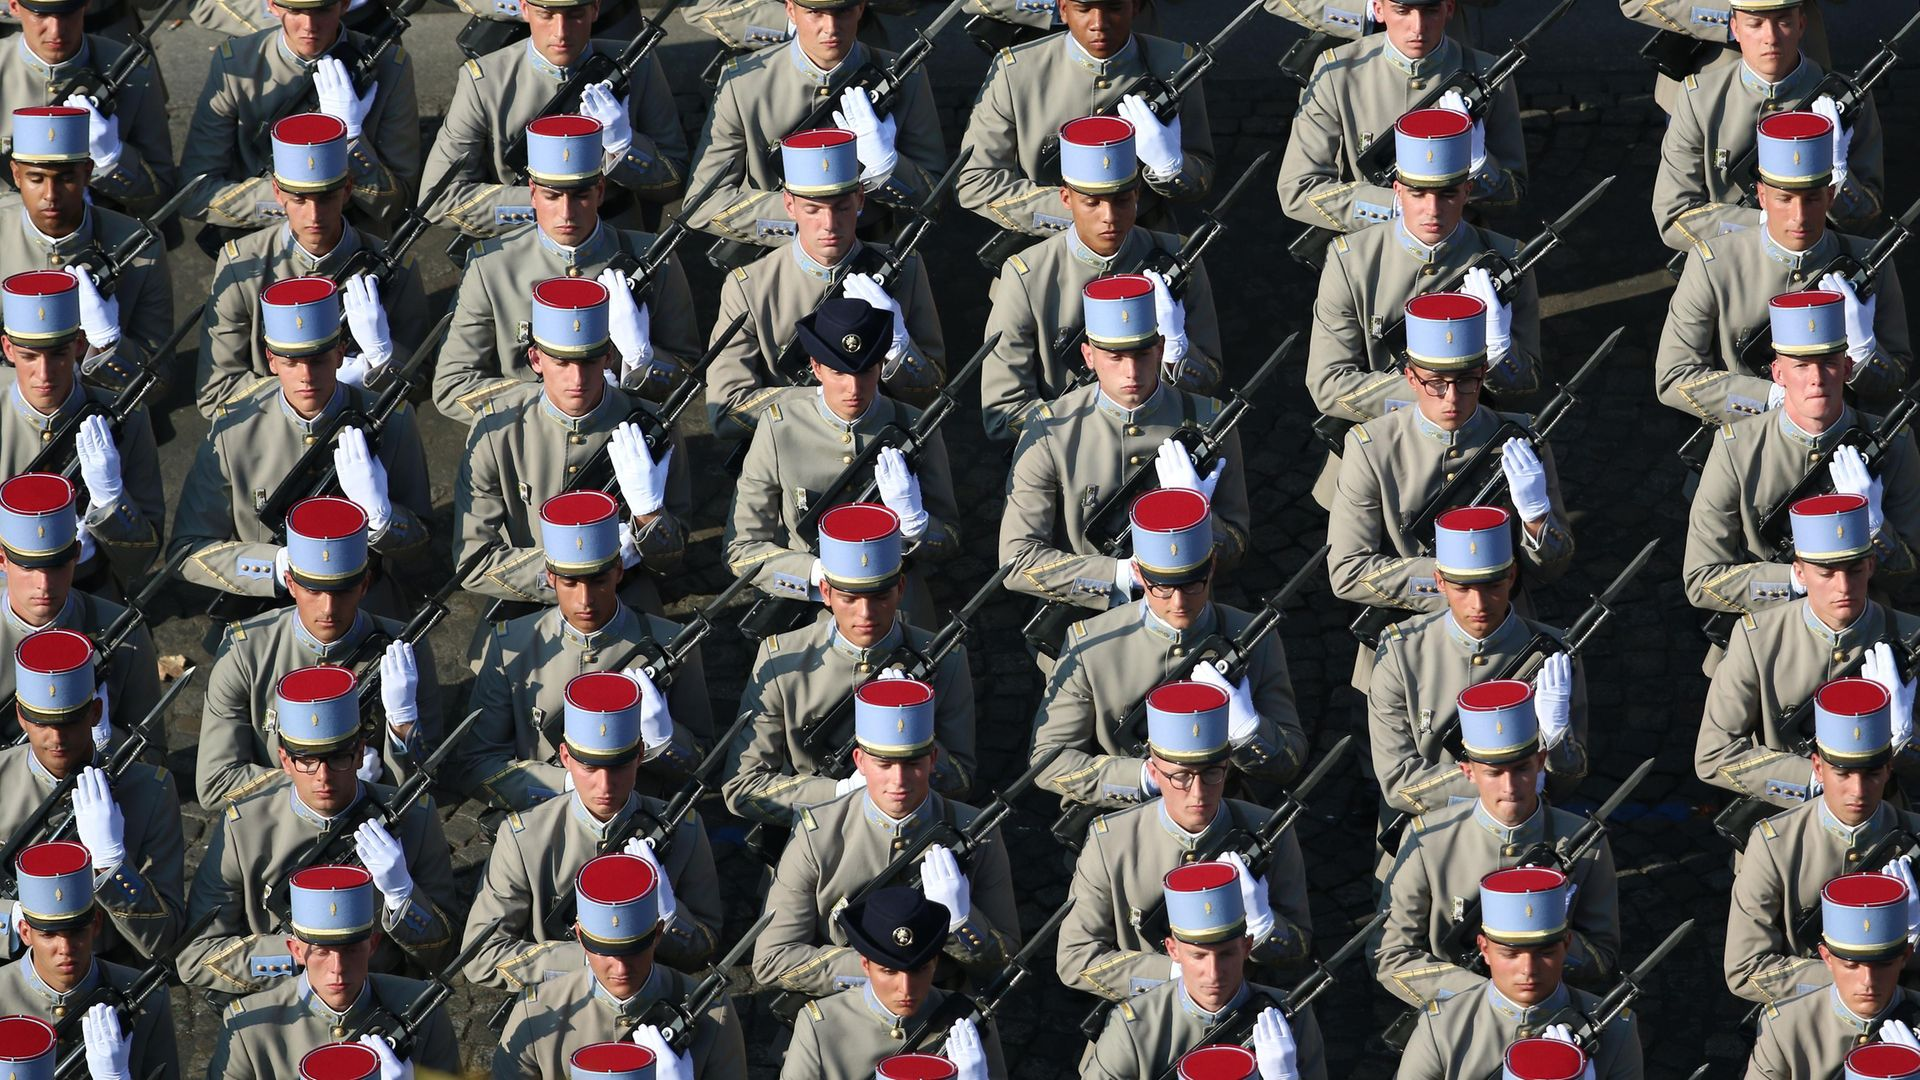 Soldiers of 2nd Regiment de Dragons during the annual Bastille Day military parade on the Champs-Elysees - Credit: AFP via Getty Images